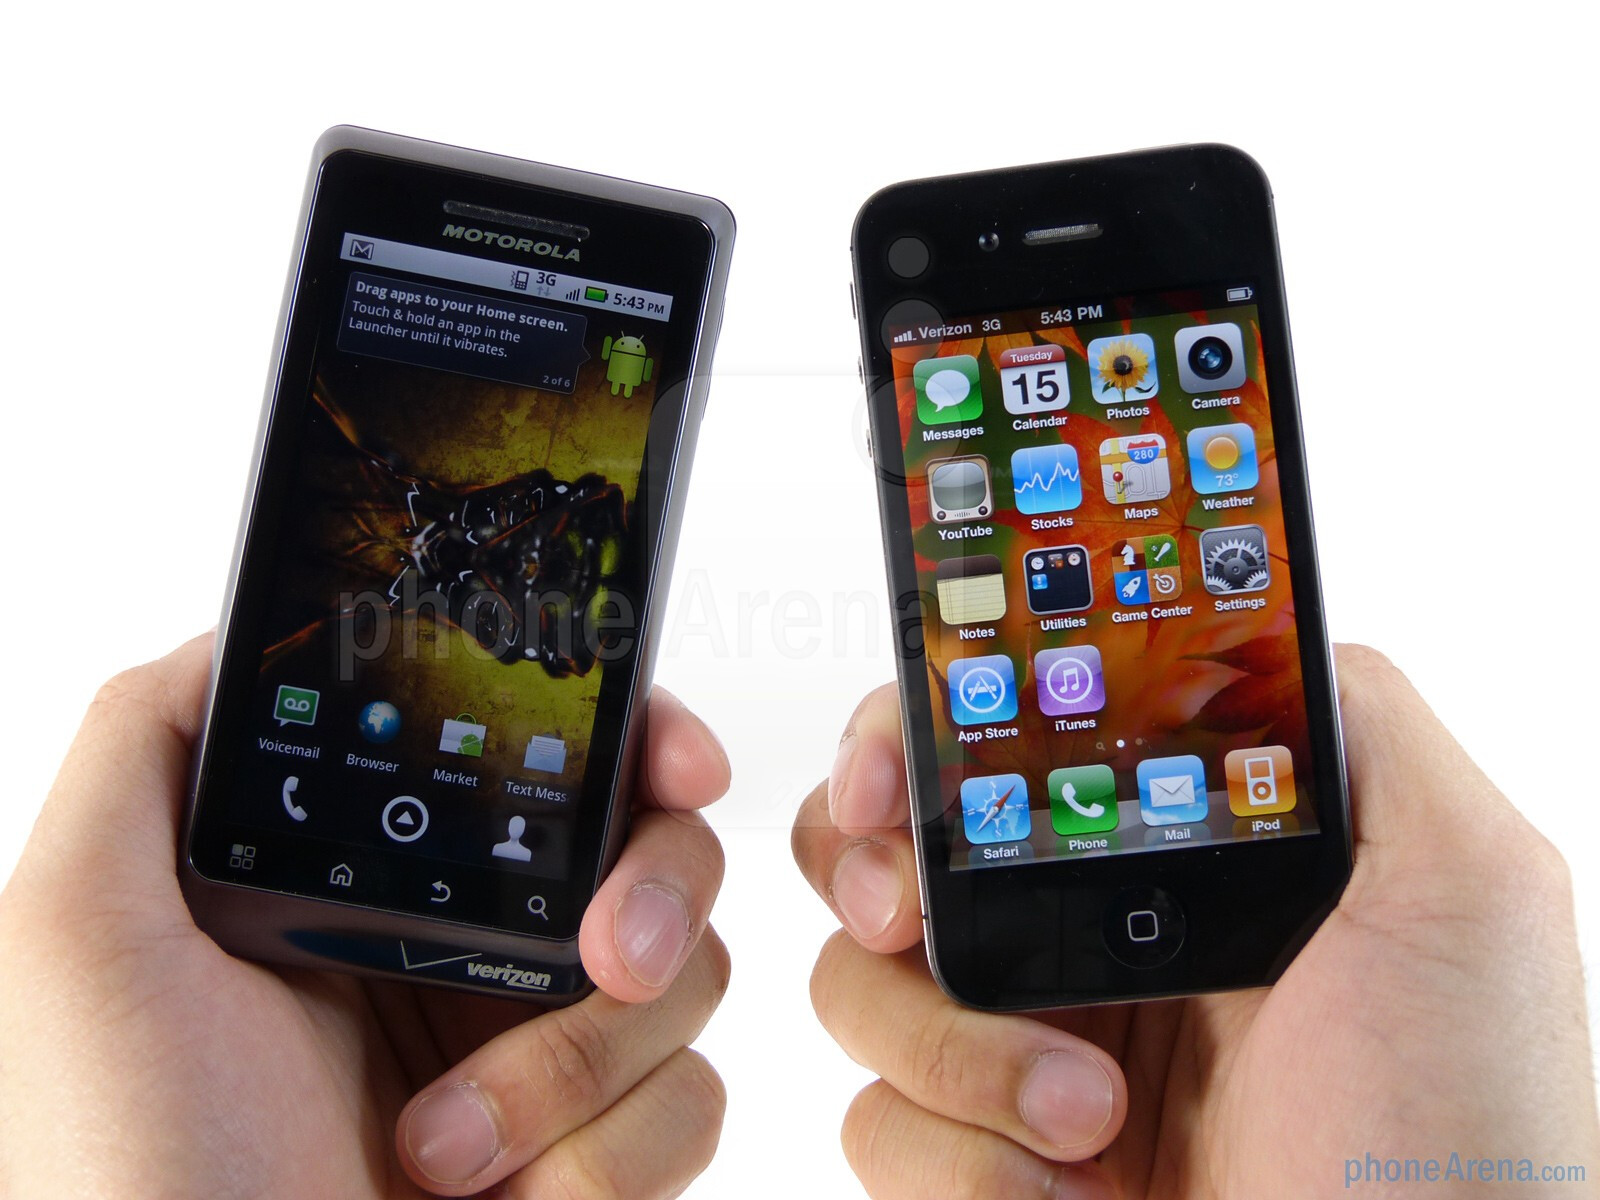 Verizon Iphone 4 Vs Droid 2 Global Electronic Circuit Design01 Both Handsets Are Fantastically Well Built All Around